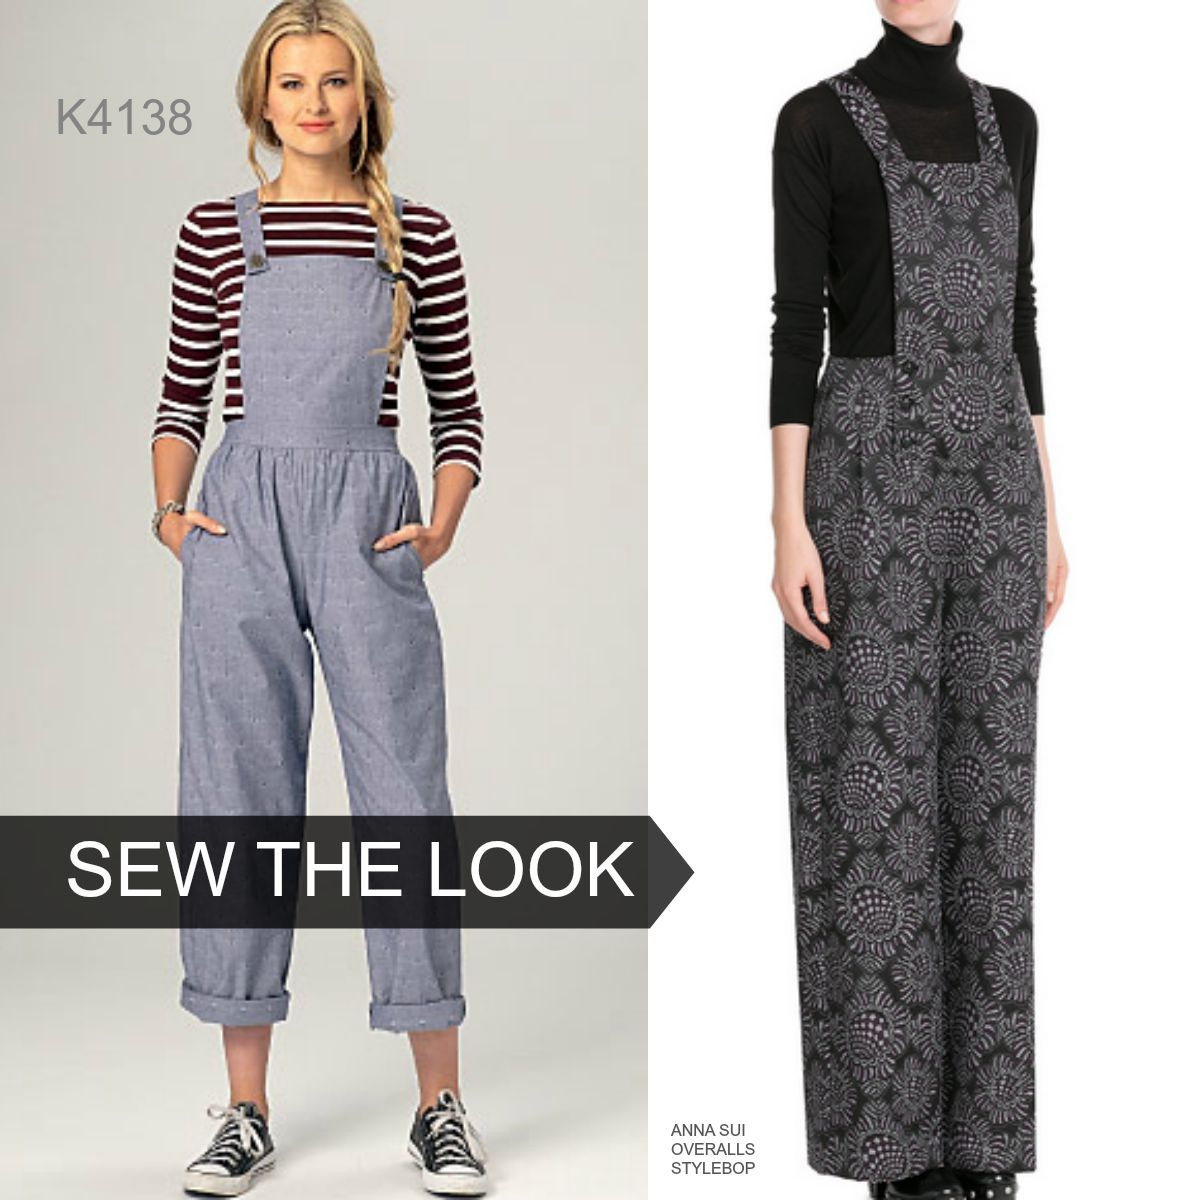 643641c16a5be4 ... Pattern Misses  Overall Jumper and Jumpsuit. Sew the Look  Overalls for  fall! This is Kwik Sew K4138.